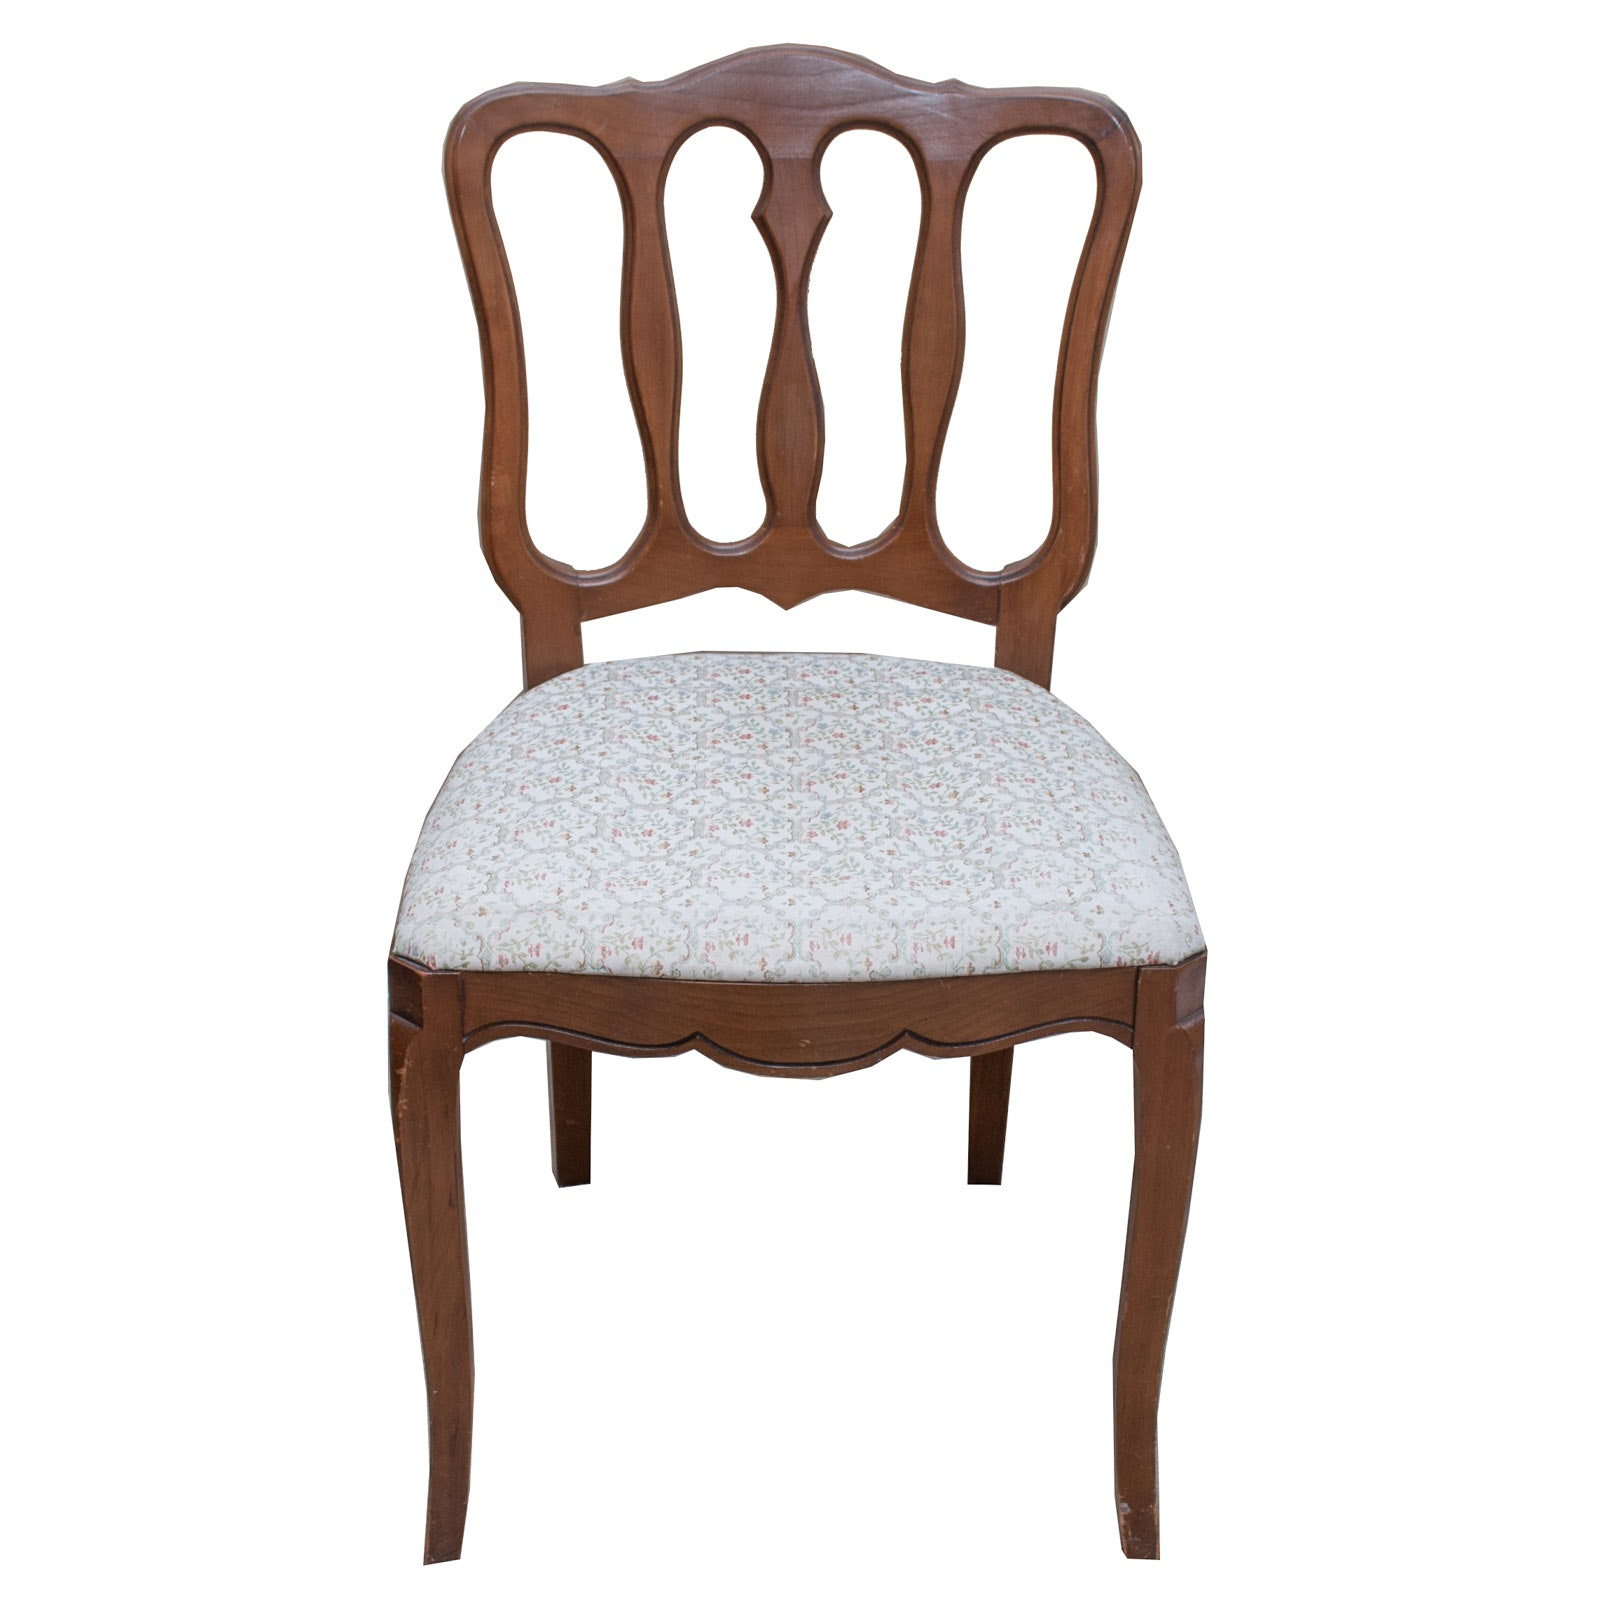 R-Way Furniture Wood and Upholstered Chair